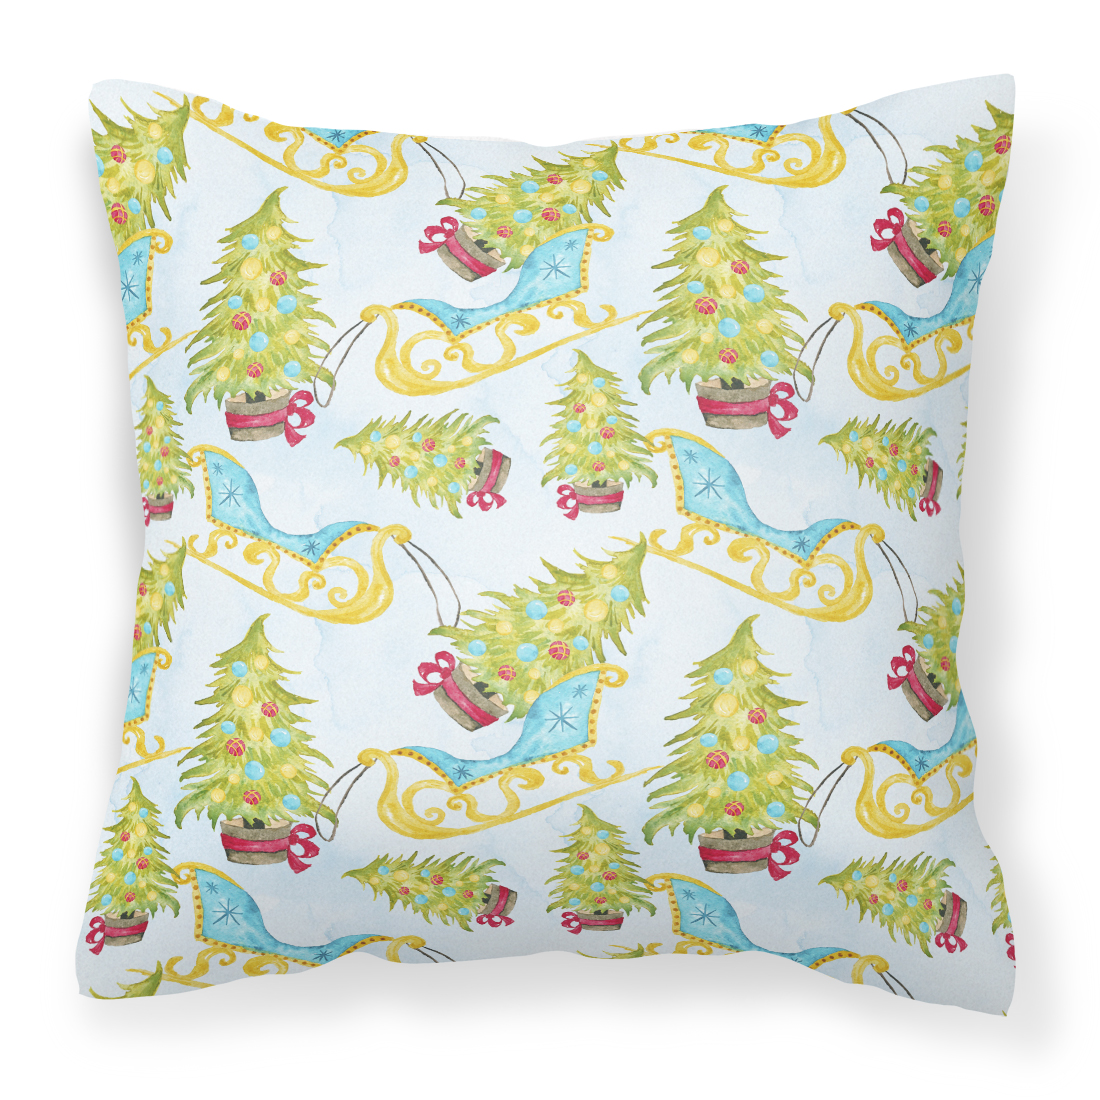 Decorative Pillow Fabric : Christmas Tree and Sleigh Fabric Decorative Pillow - Tanga